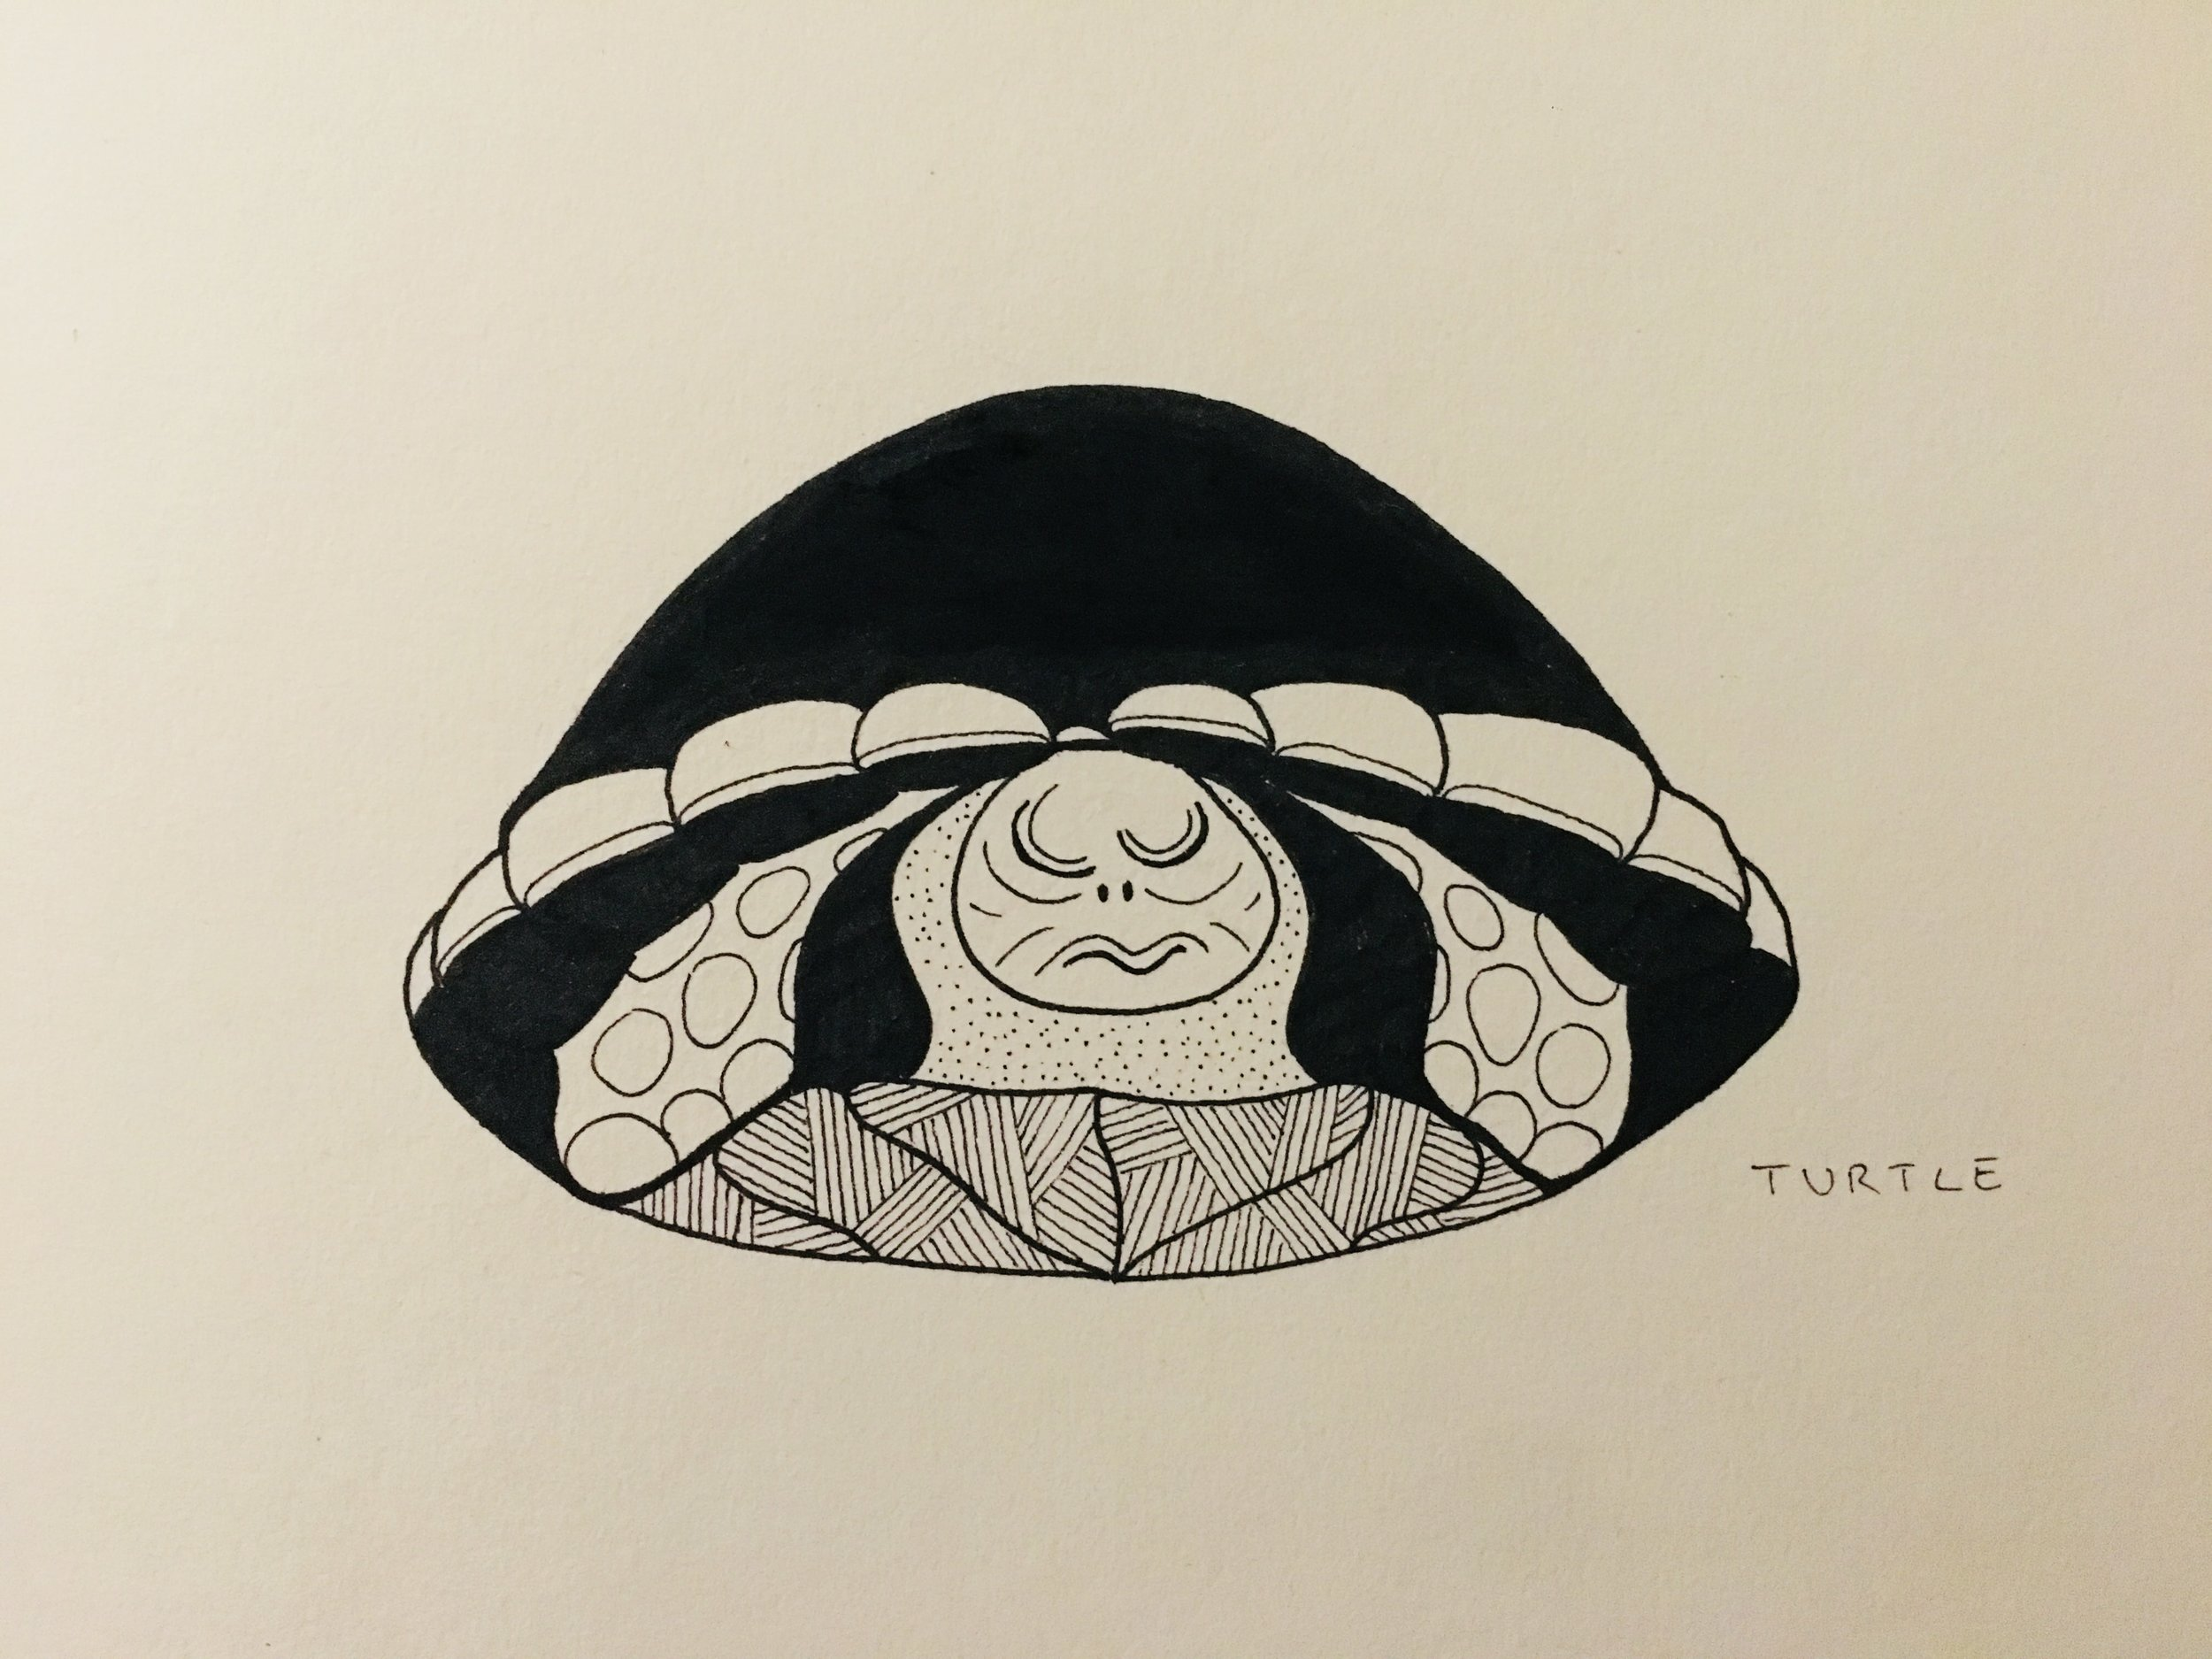 Turtle, 2018, ink on paper, 20cm x 15cm